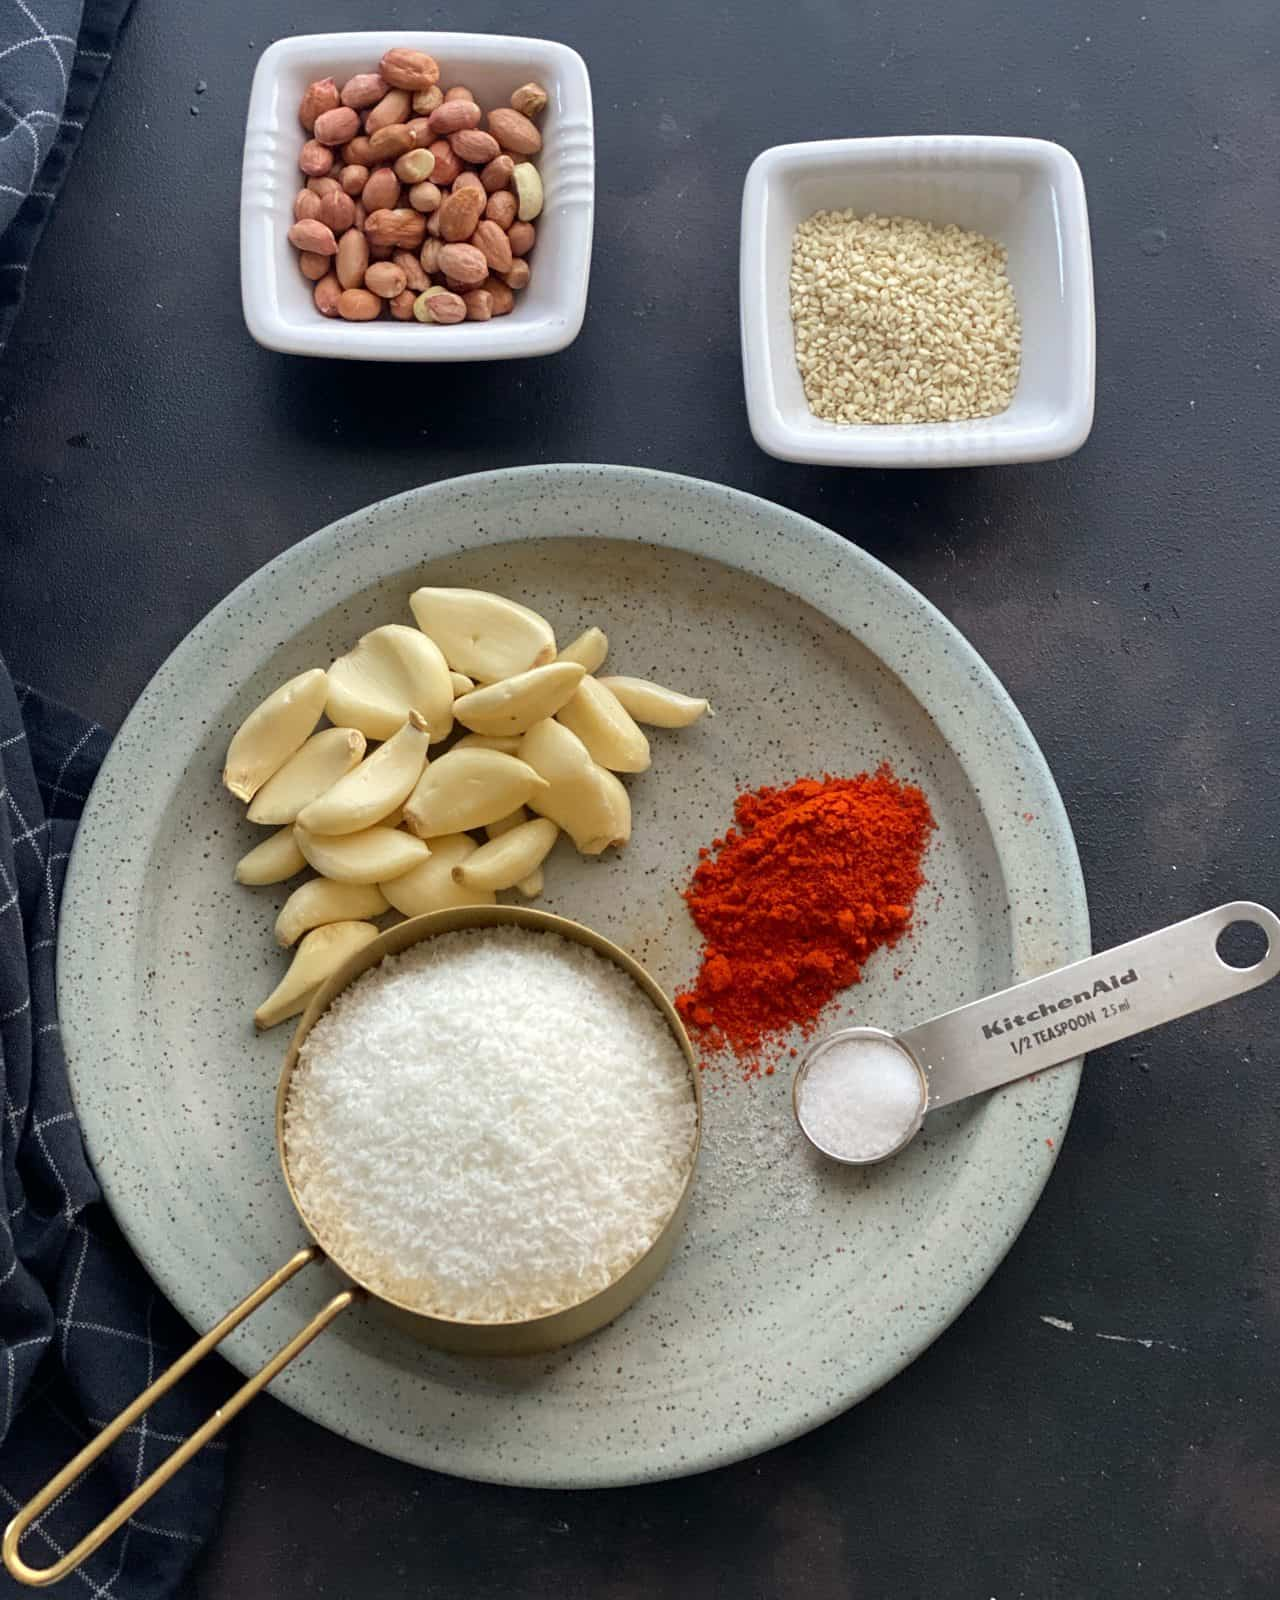 Ingredients for garlic chutney laid out in grey plate - desiccated coconut, chili powder, garlic cloves, salt. Sesame seeds and red skin peanuts are in separate bowls.